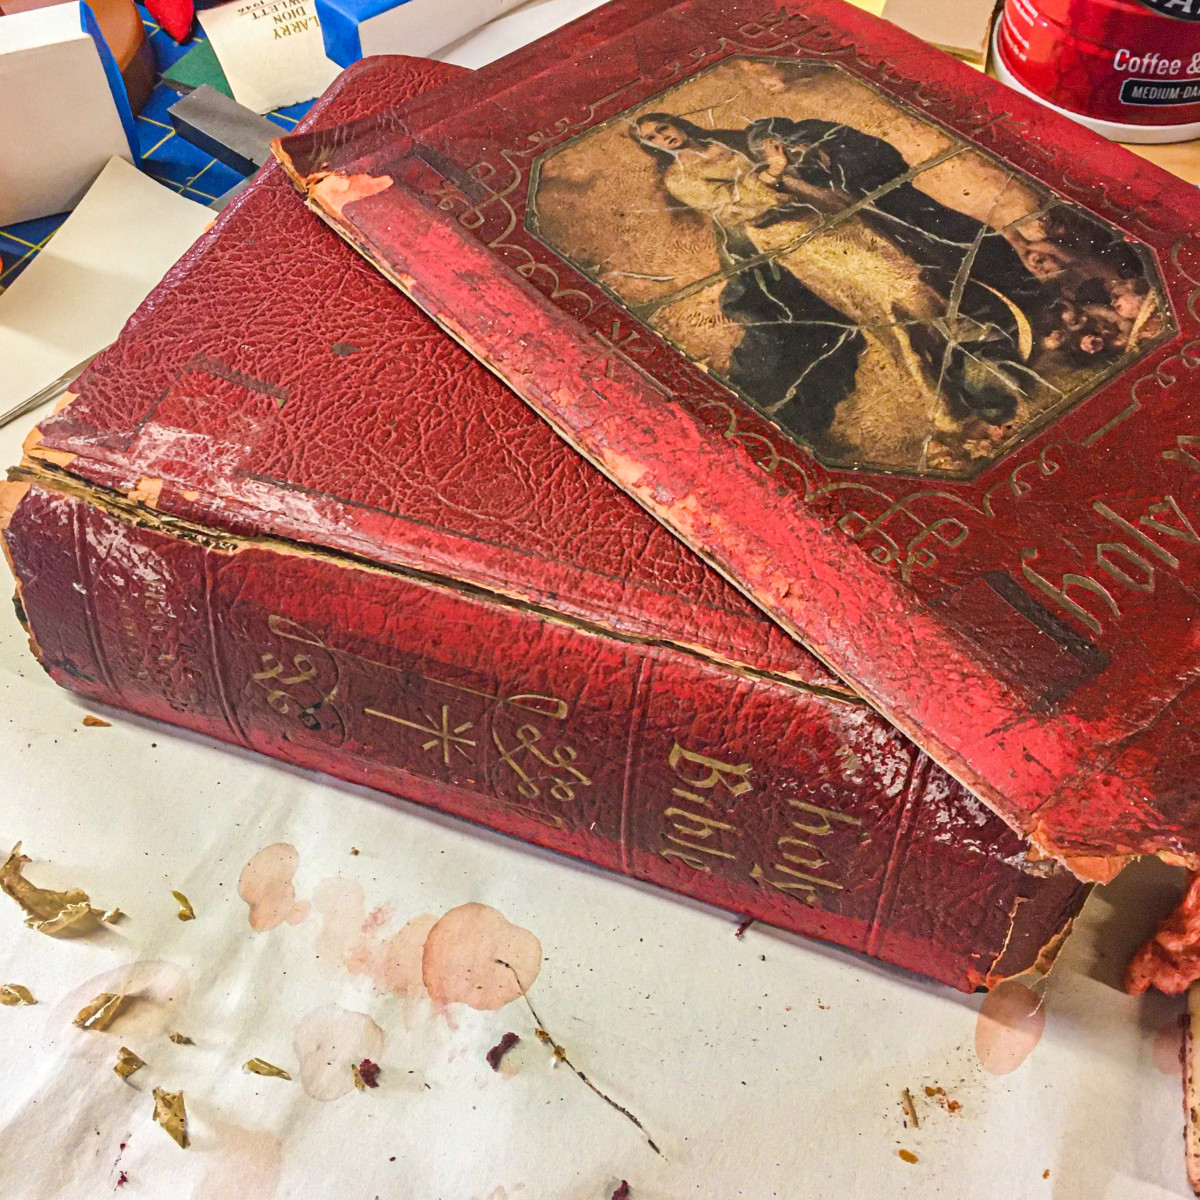 How Not To Repair Your Old Bible With Duct Tape